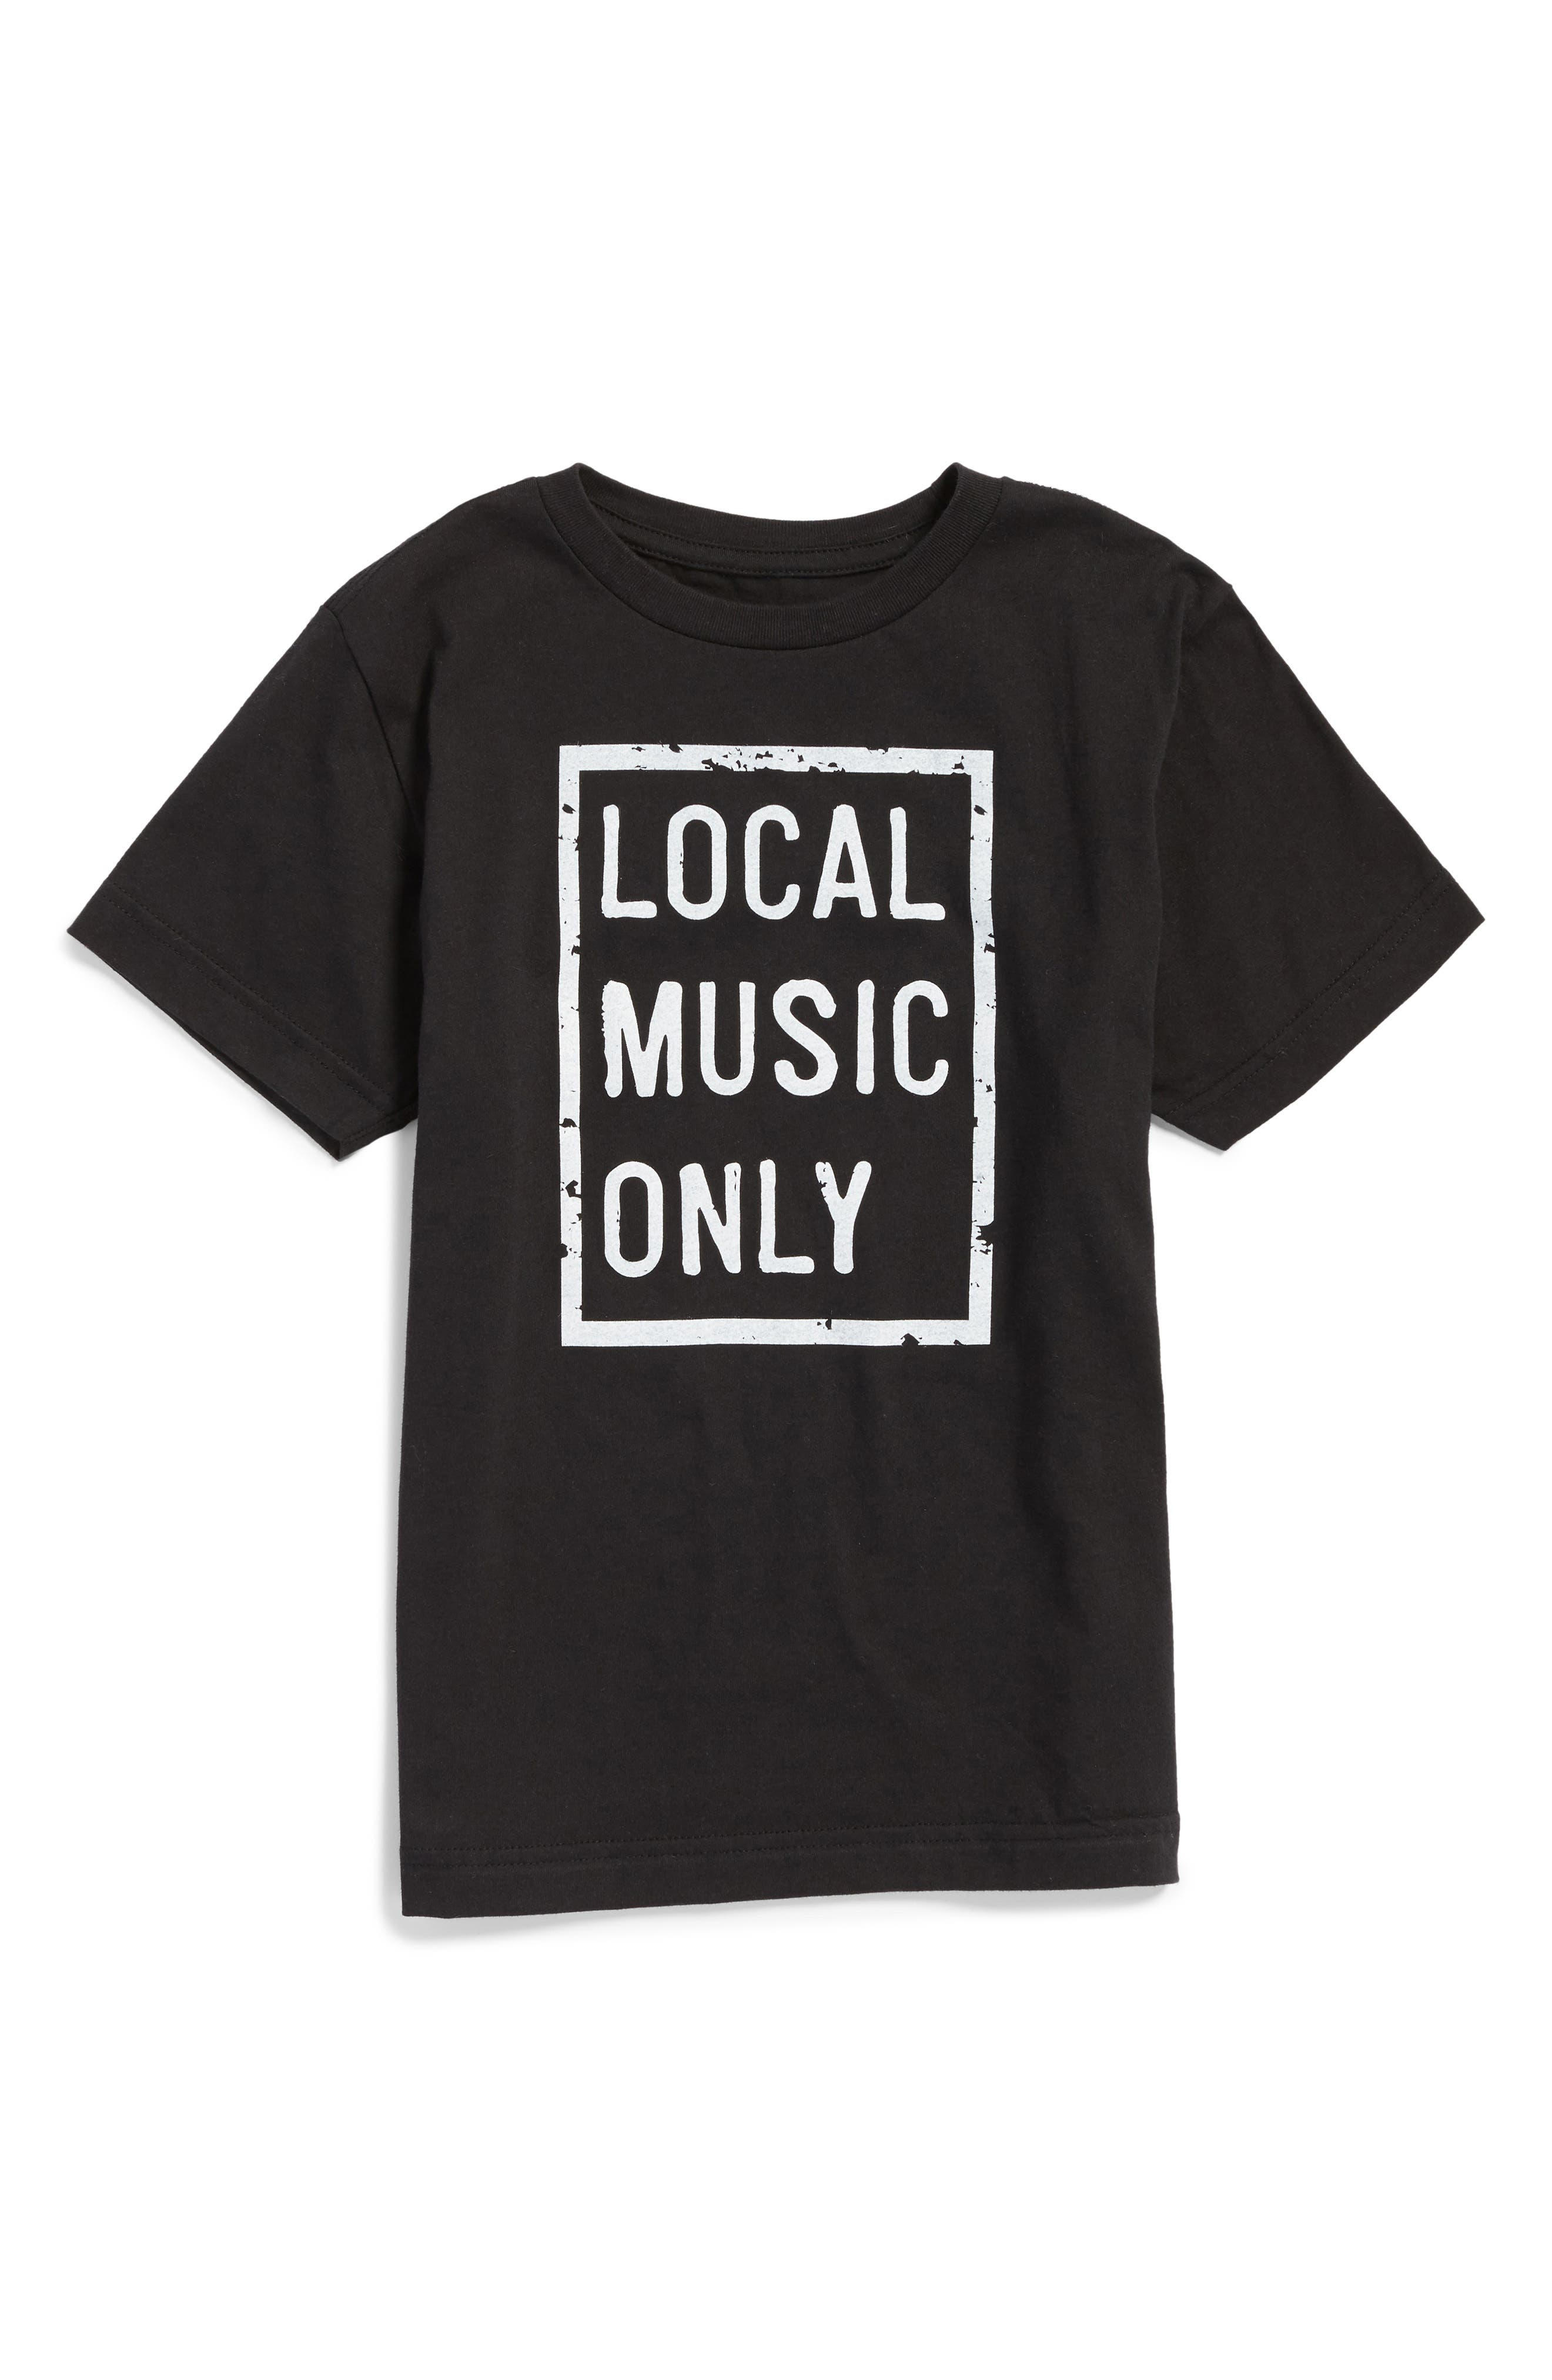 Main Image - Dilascia Local Music Only Graphic T-Shirt (Toddler Boys, Little Boys & Big Boys)